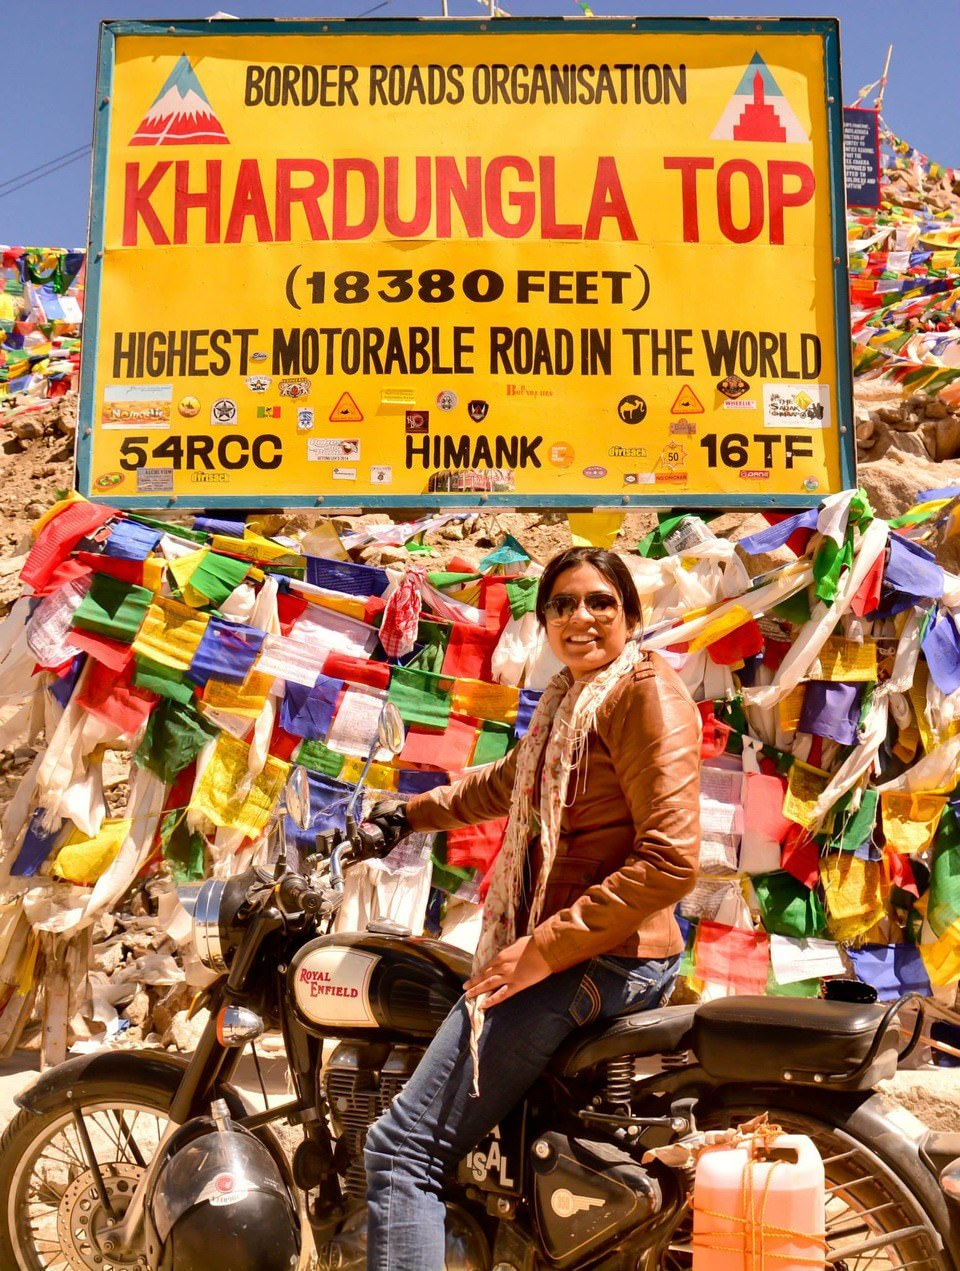 Khardung La - highest motorable road in the world